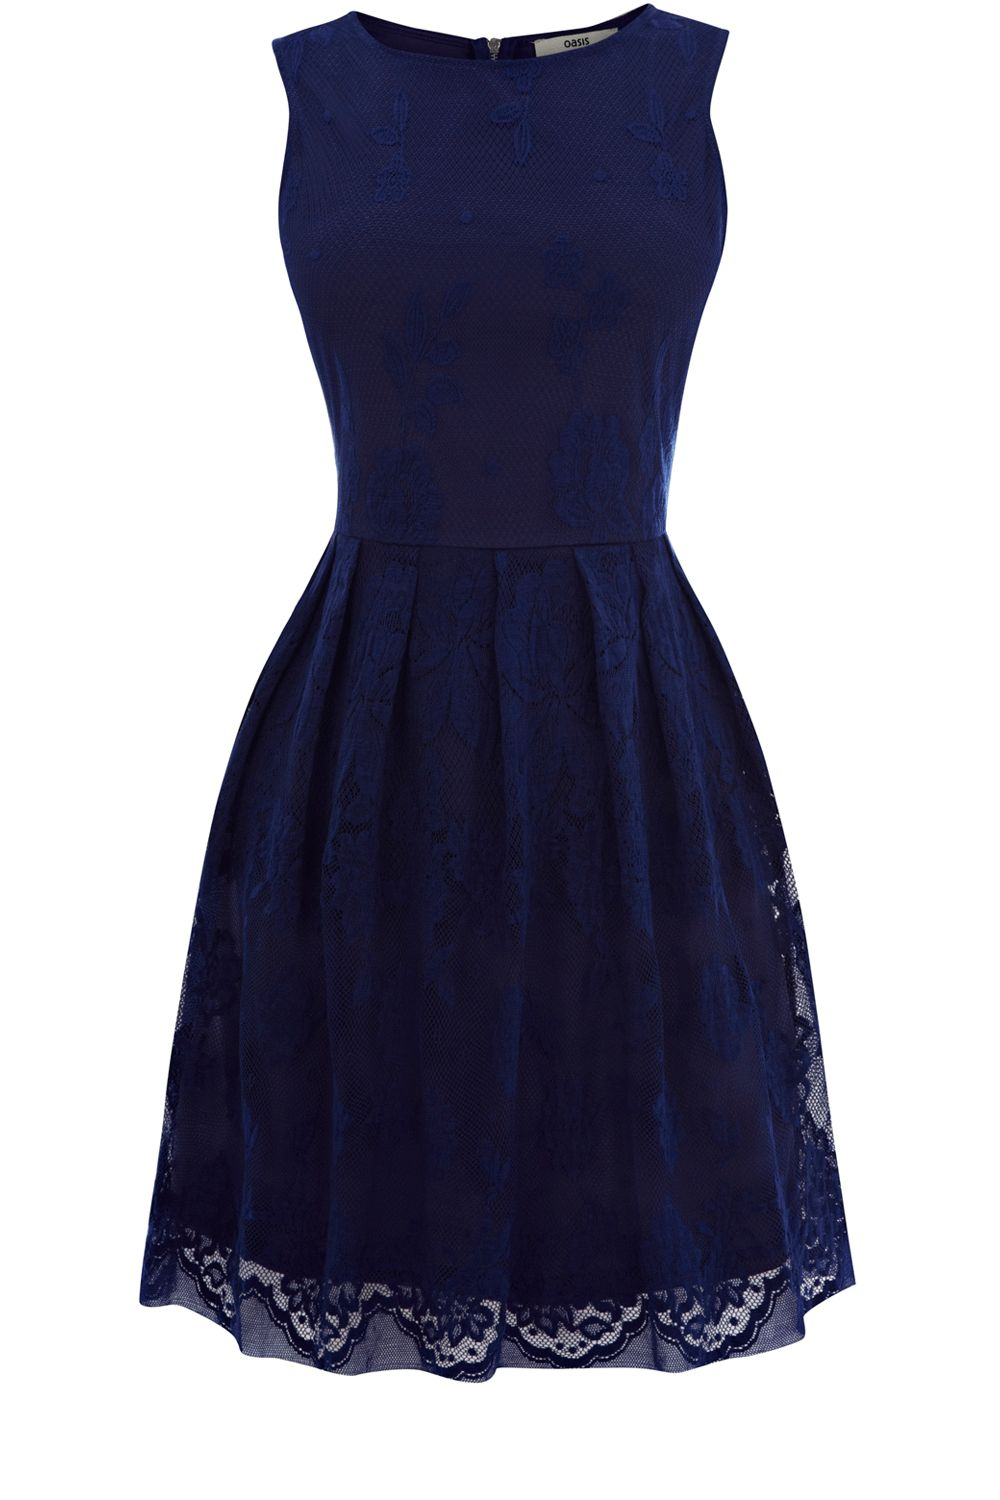 Dark blue lace bridesmaid dresses the for Blue lace wedding dress